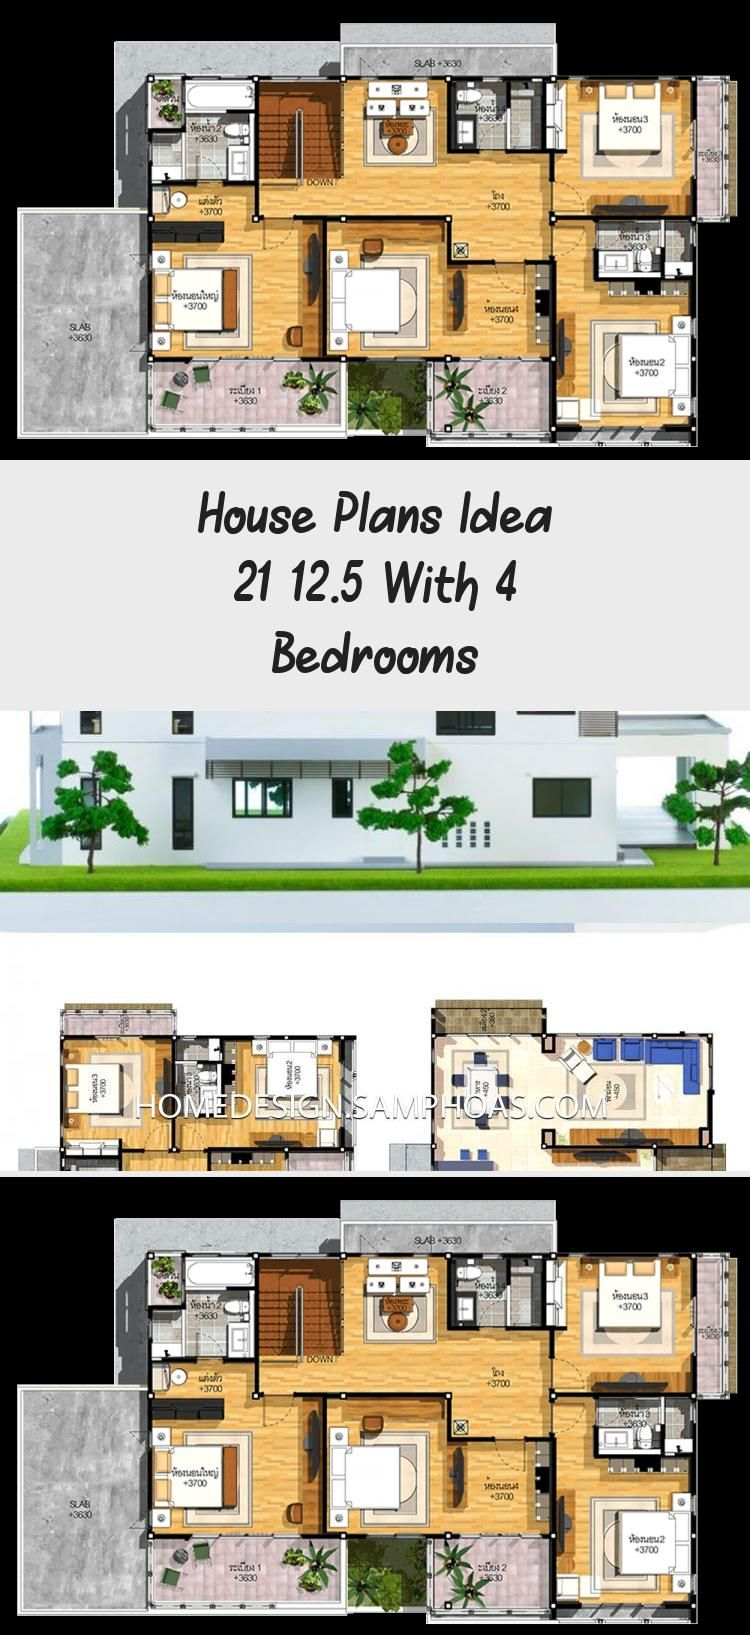 House Plans Idea 21 12 5 With 4 Bedrooms In 2020 House Plans Country Floor Plans Floor Plans